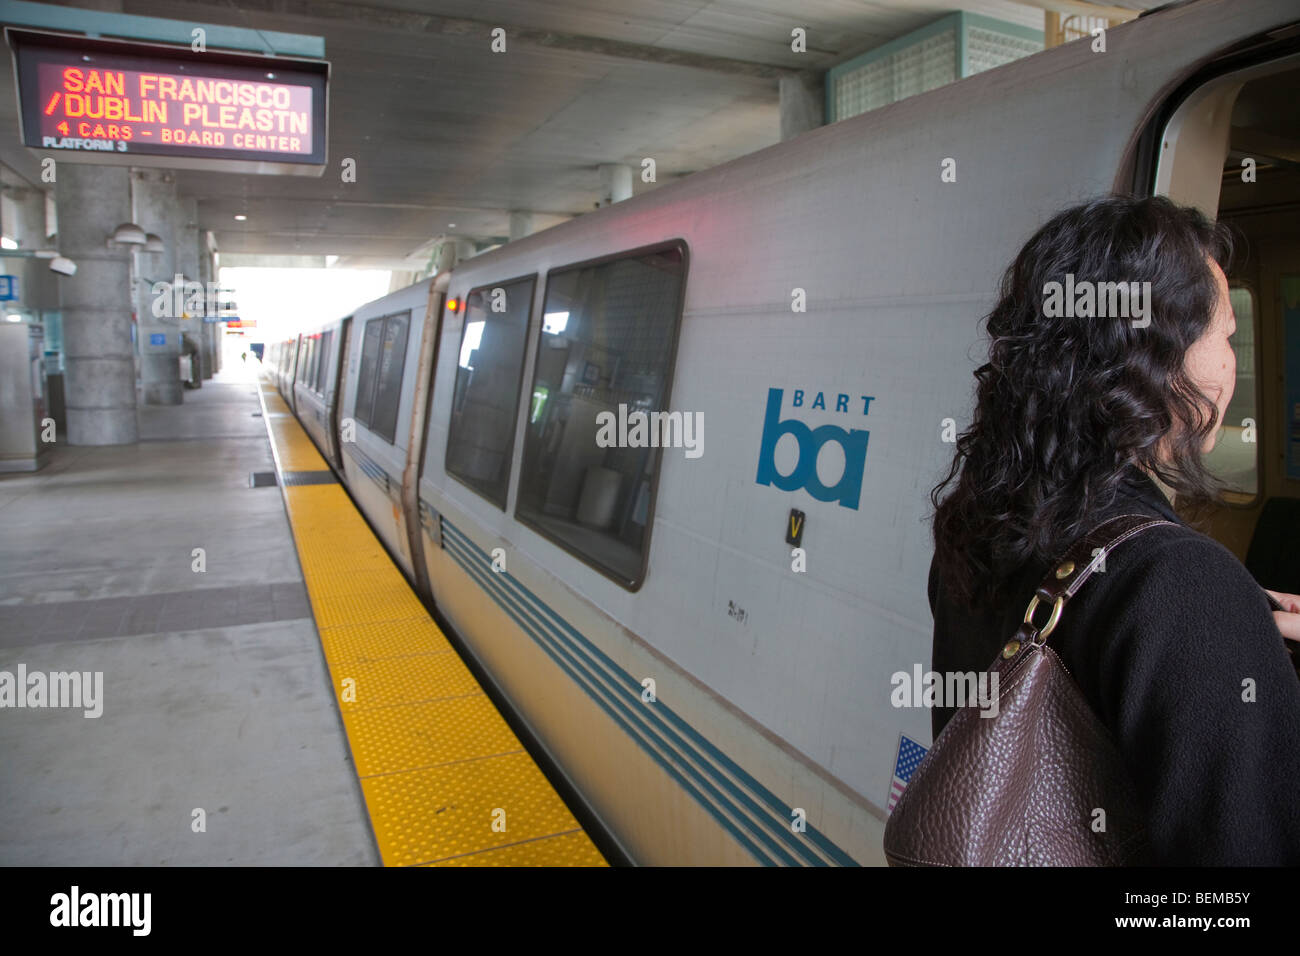 A woman boarding a commuter train at BART station. Millbrae, California, USA - Stock Image